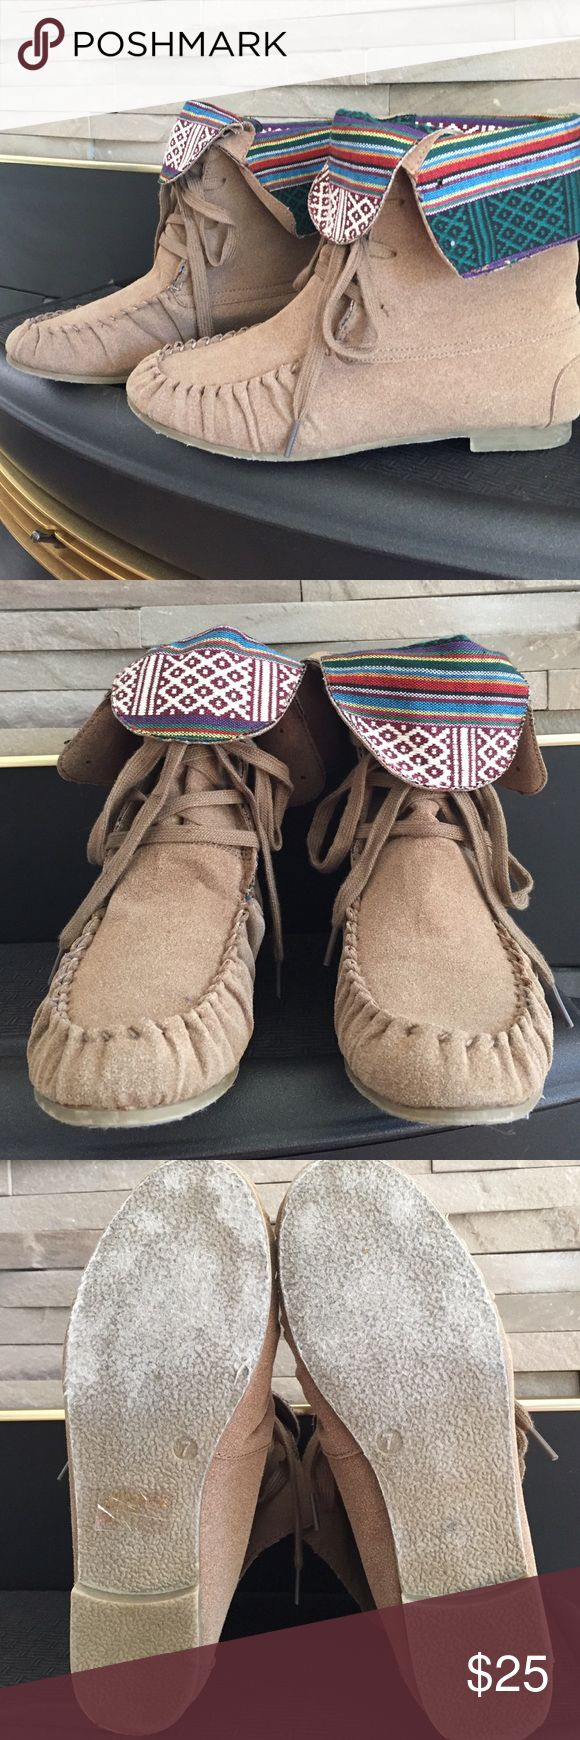 Aztec fold over moccasins   Cute moccasin style booties, folds over with Aztec design.  These are lightweight boots, in like new condition. Charlotte Russe Shoes Ankle Boots & Booties